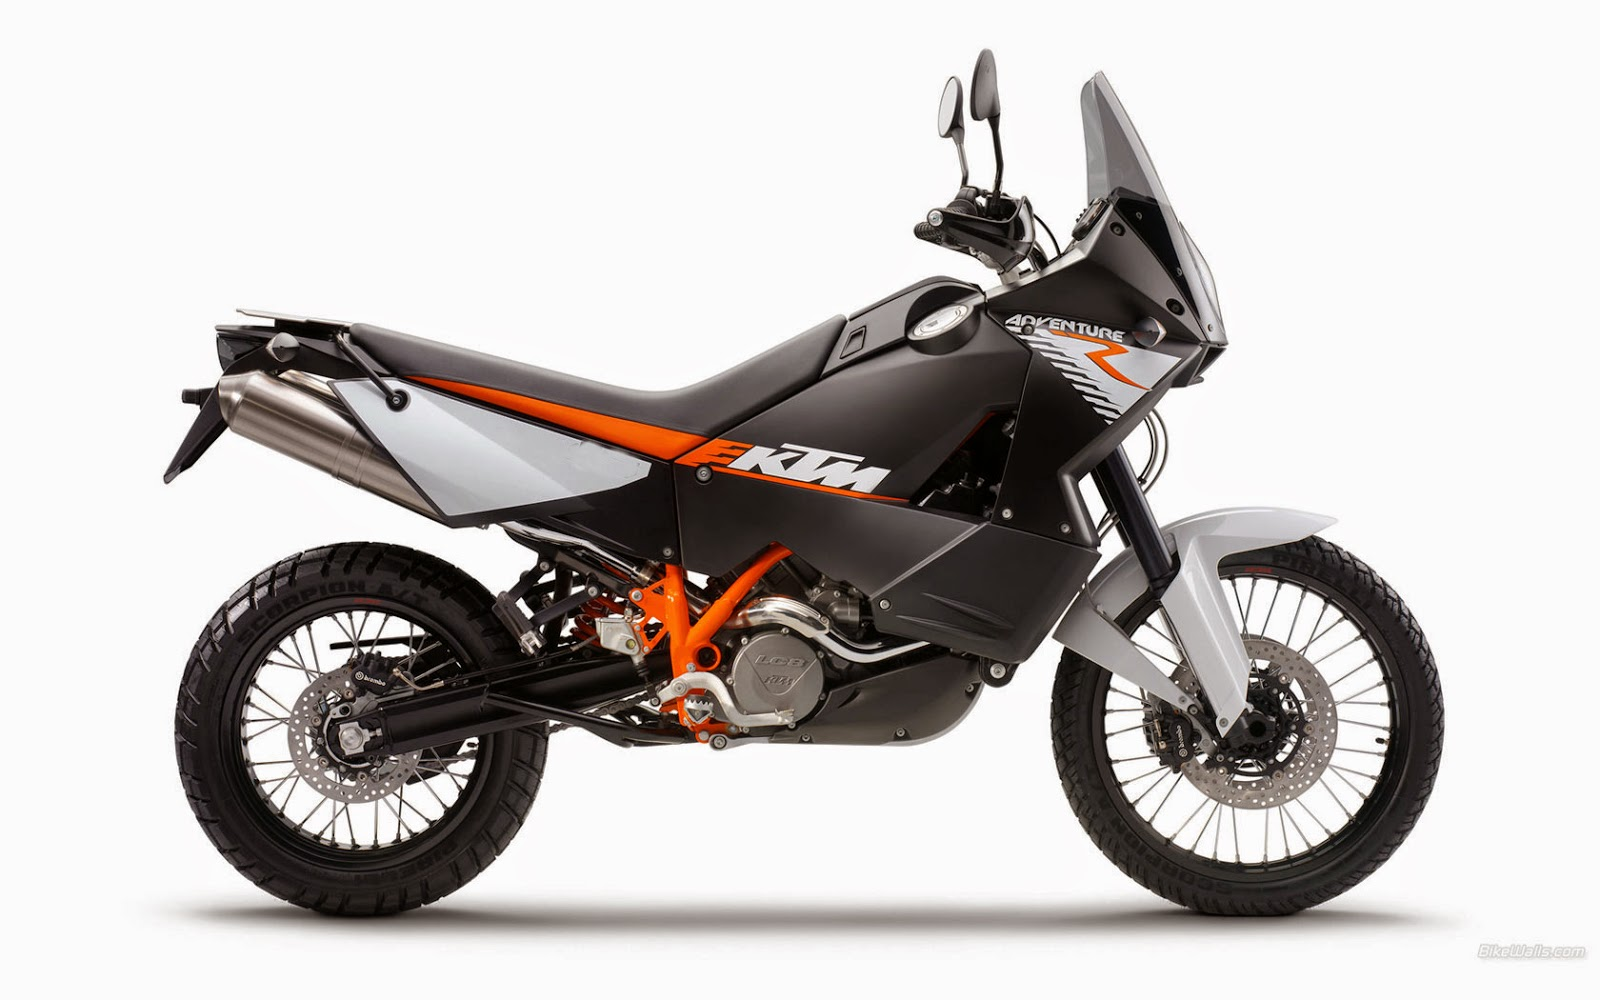 KTM Introducing 1050 Adventure Bike In India | Bike Car ...